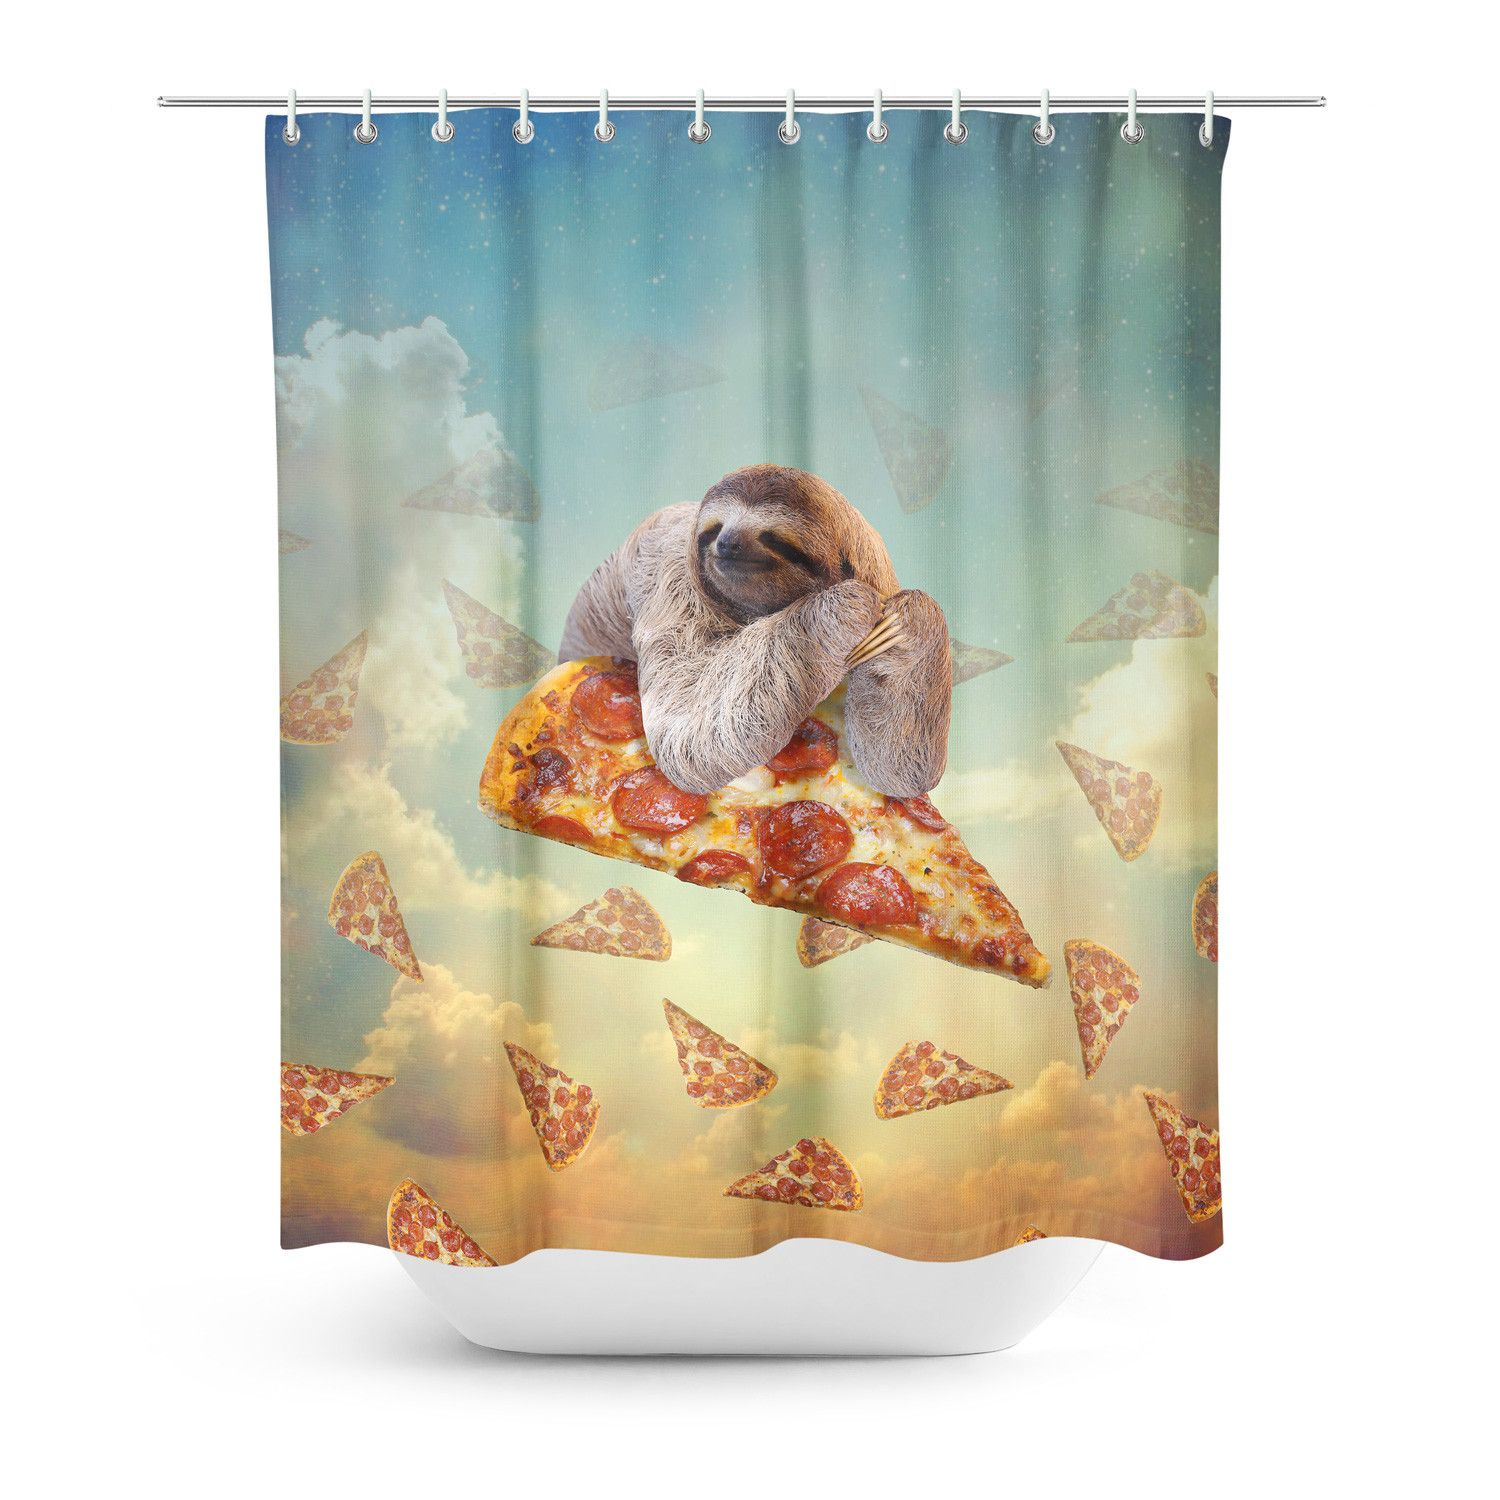 Sloth Pizza Shower Curtain Funny Shower Curtains Sloth Shower